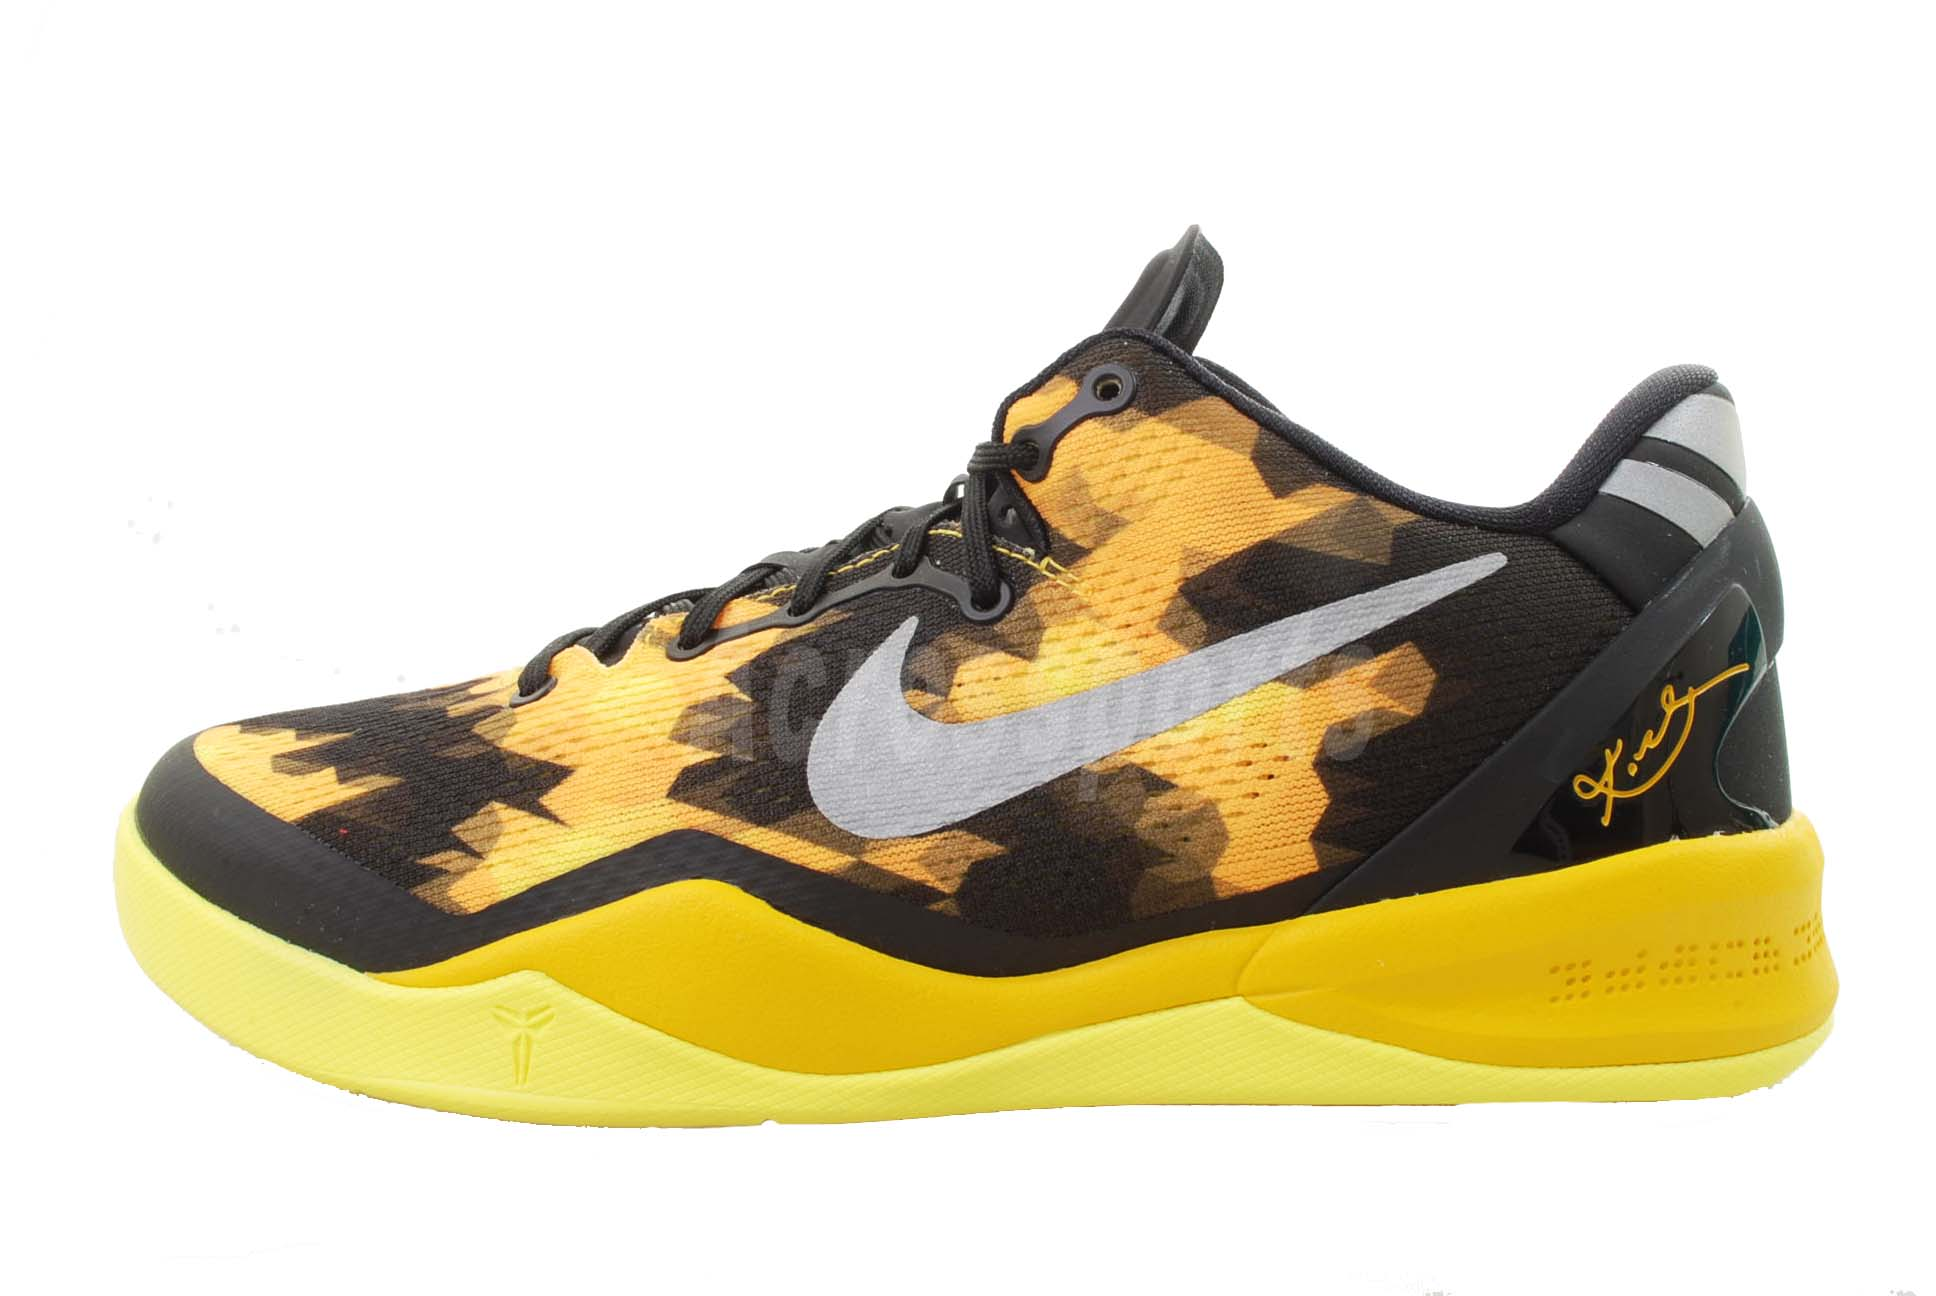 nike 8 viii gs la lakers bryant 24 youth boys